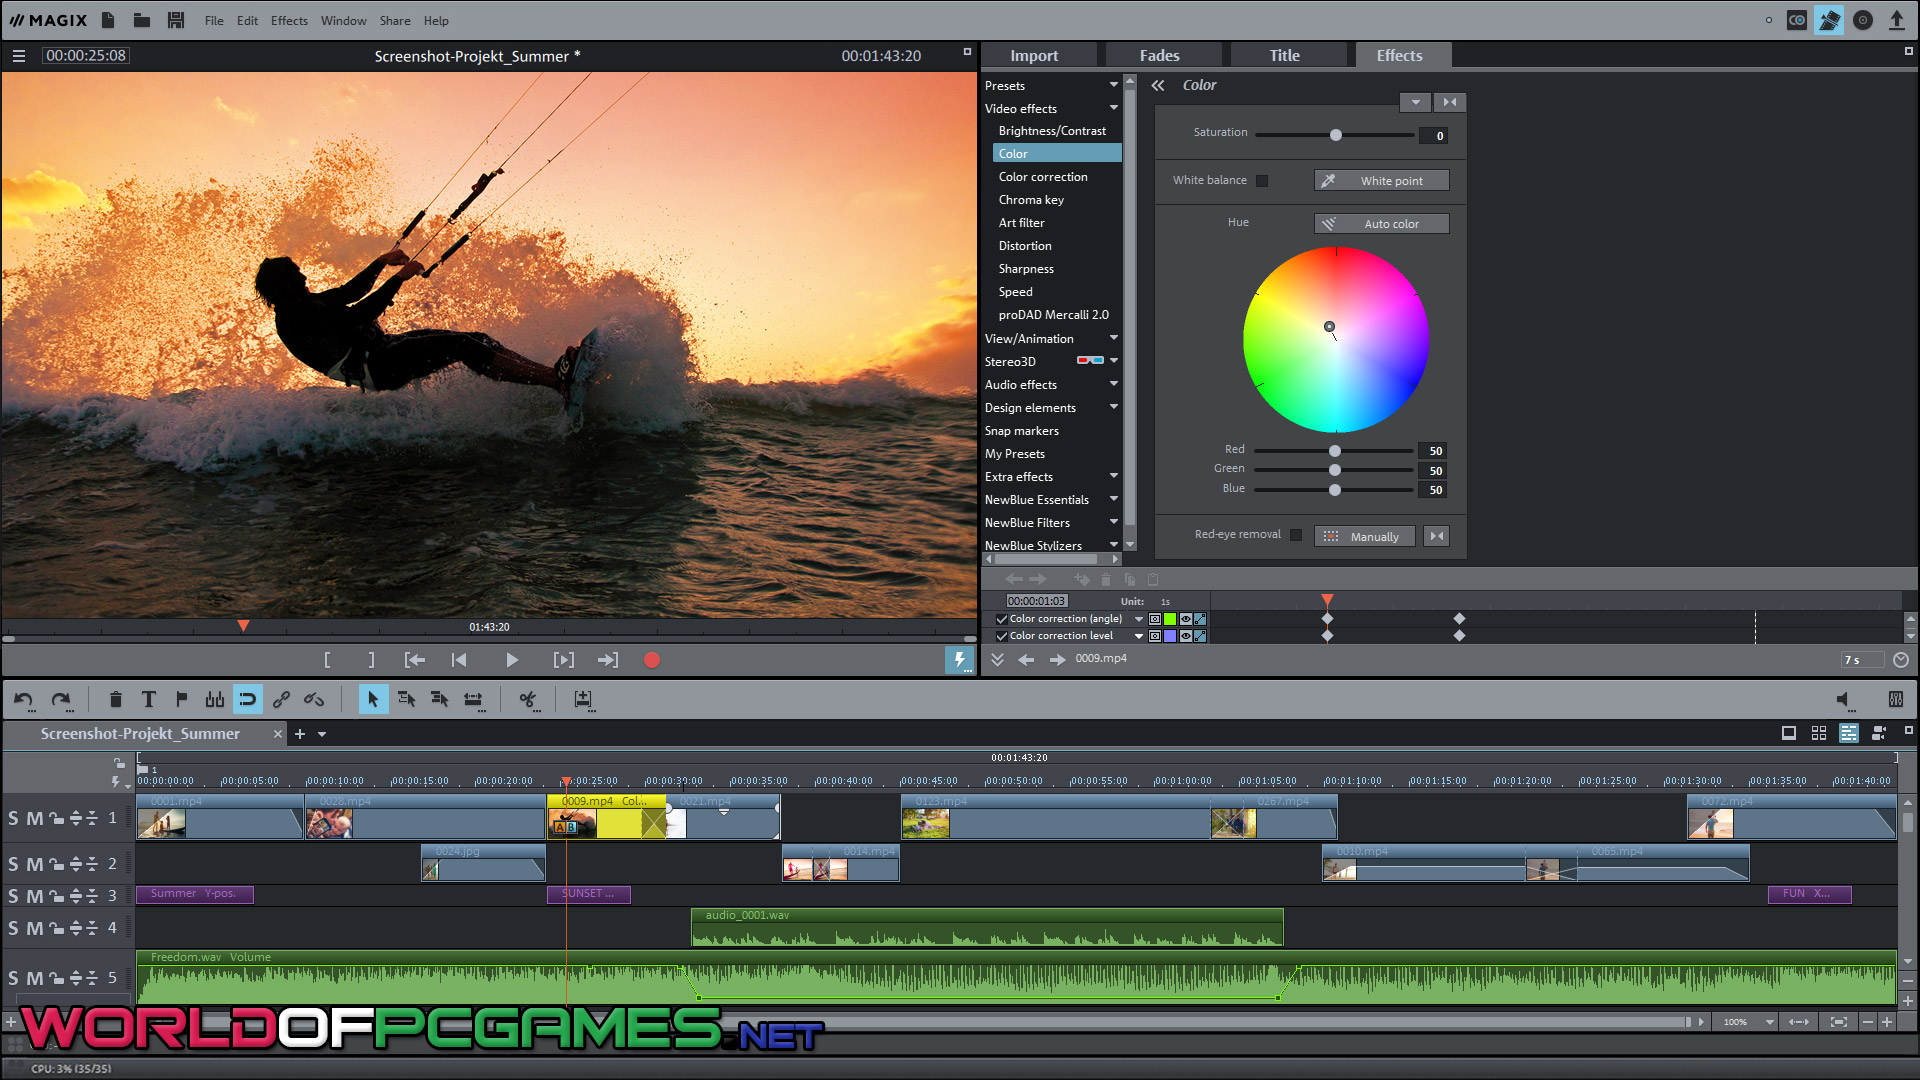 Magix Movie Edit Pro Premium 2018 Free Download By Worldofpcgames.com